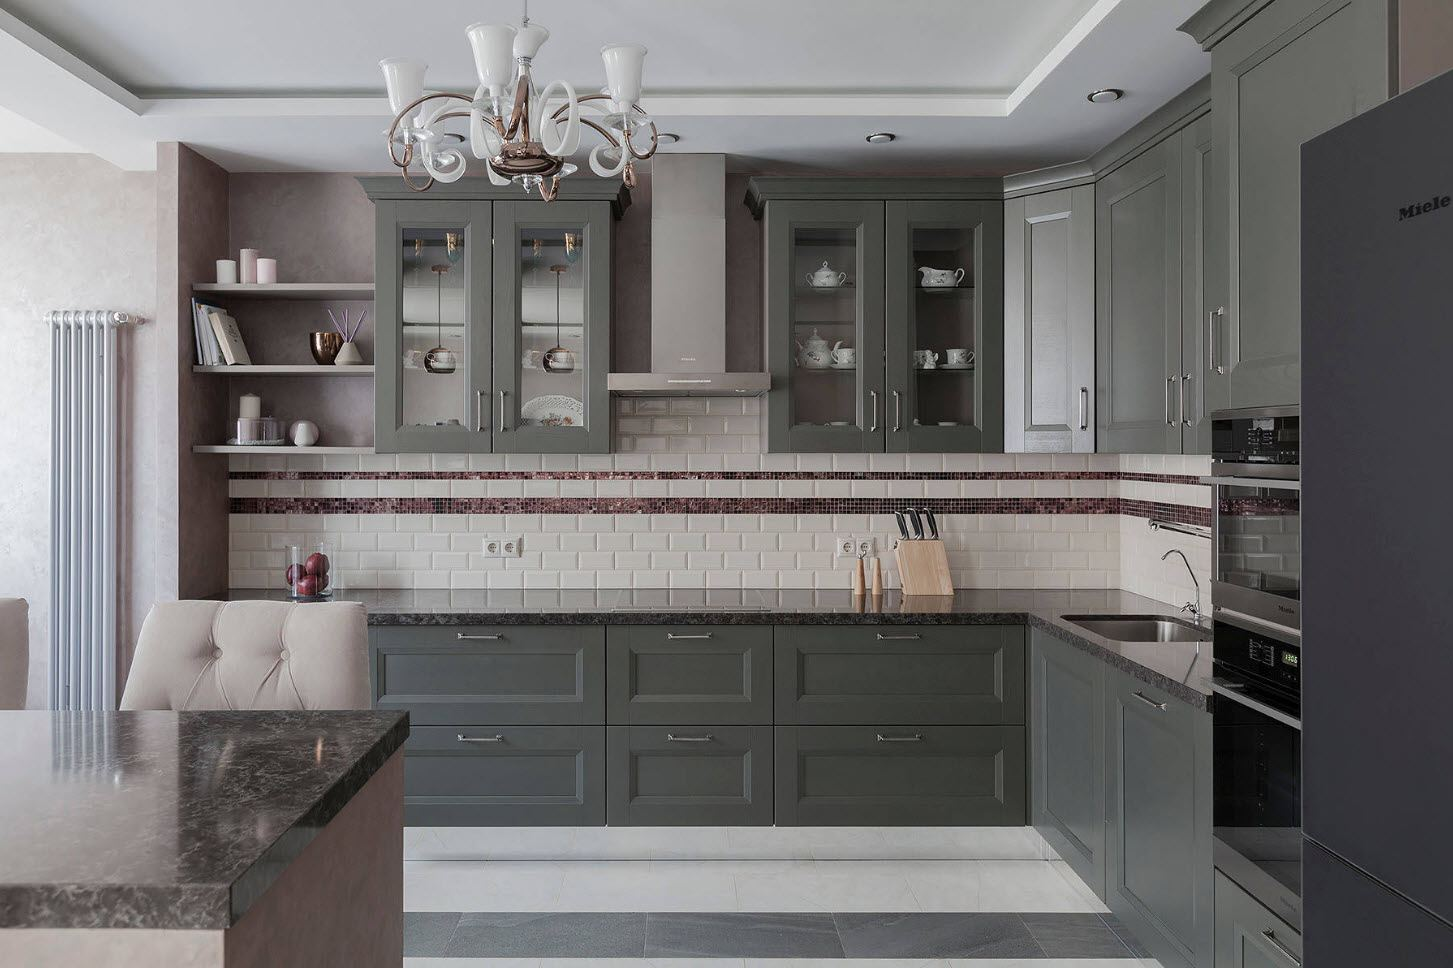 Gray kitchen cabinets with artistically formed facades and vintage chandelier